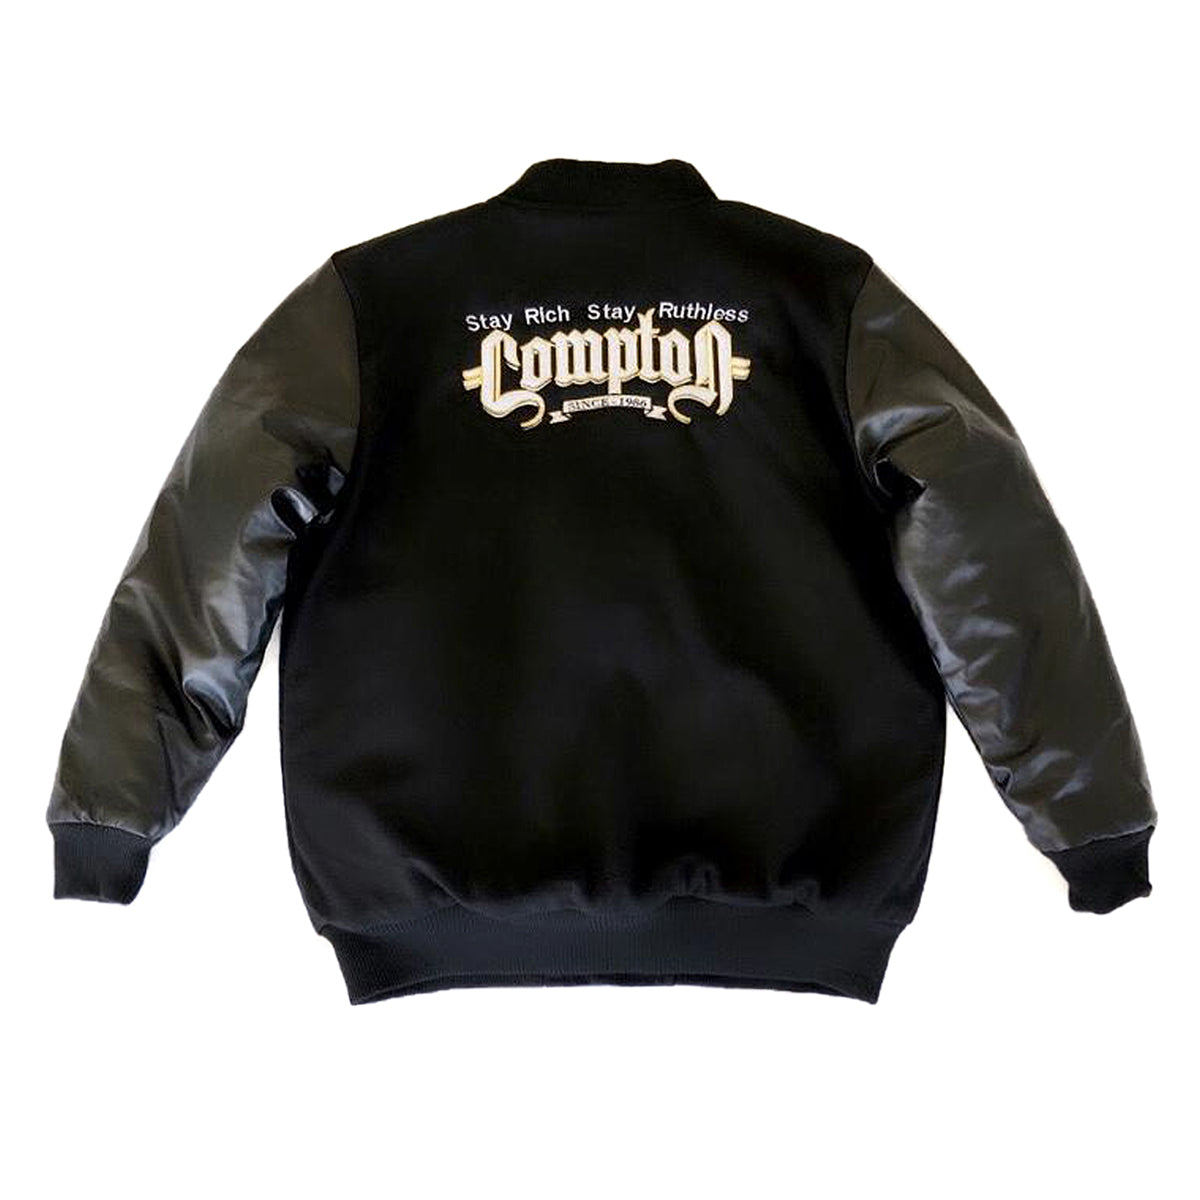 LIMITED EDITION - Stay Rich. Stay Ruthless. Compton Est. 1986 Letterman Jacket (Black)